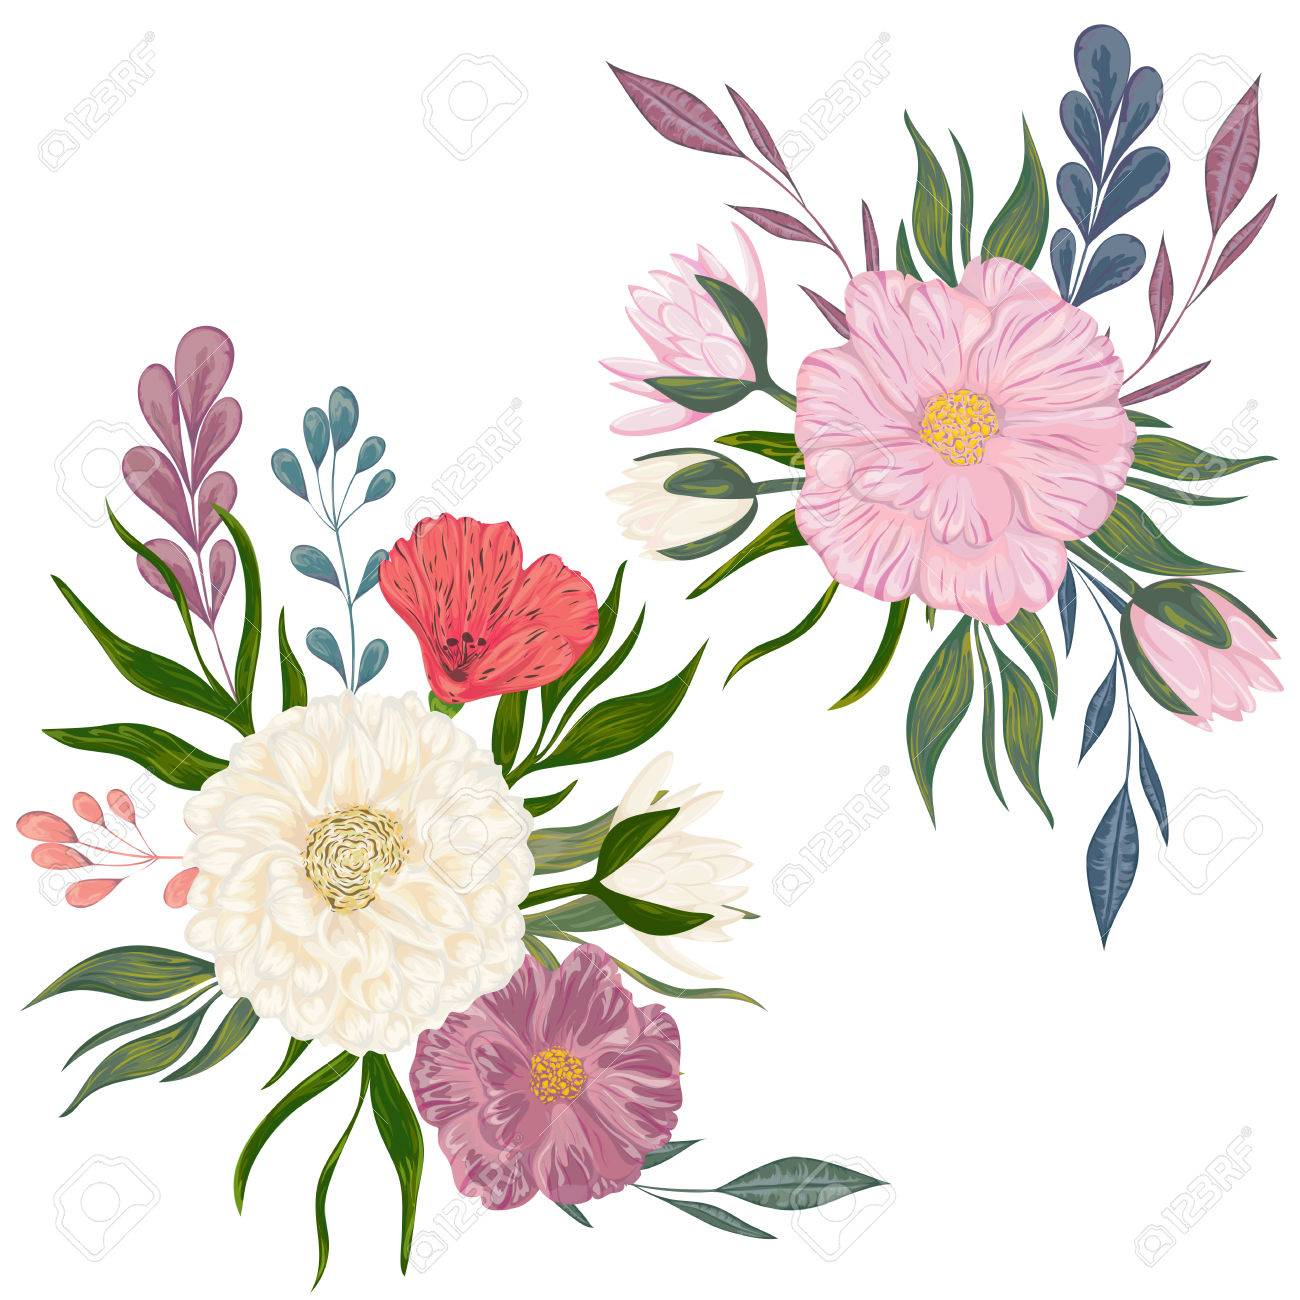 Collection decorative design elements for wedding invitations collection decorative design elements for wedding invitations and birthday cards flowers leaves and buds izmirmasajfo